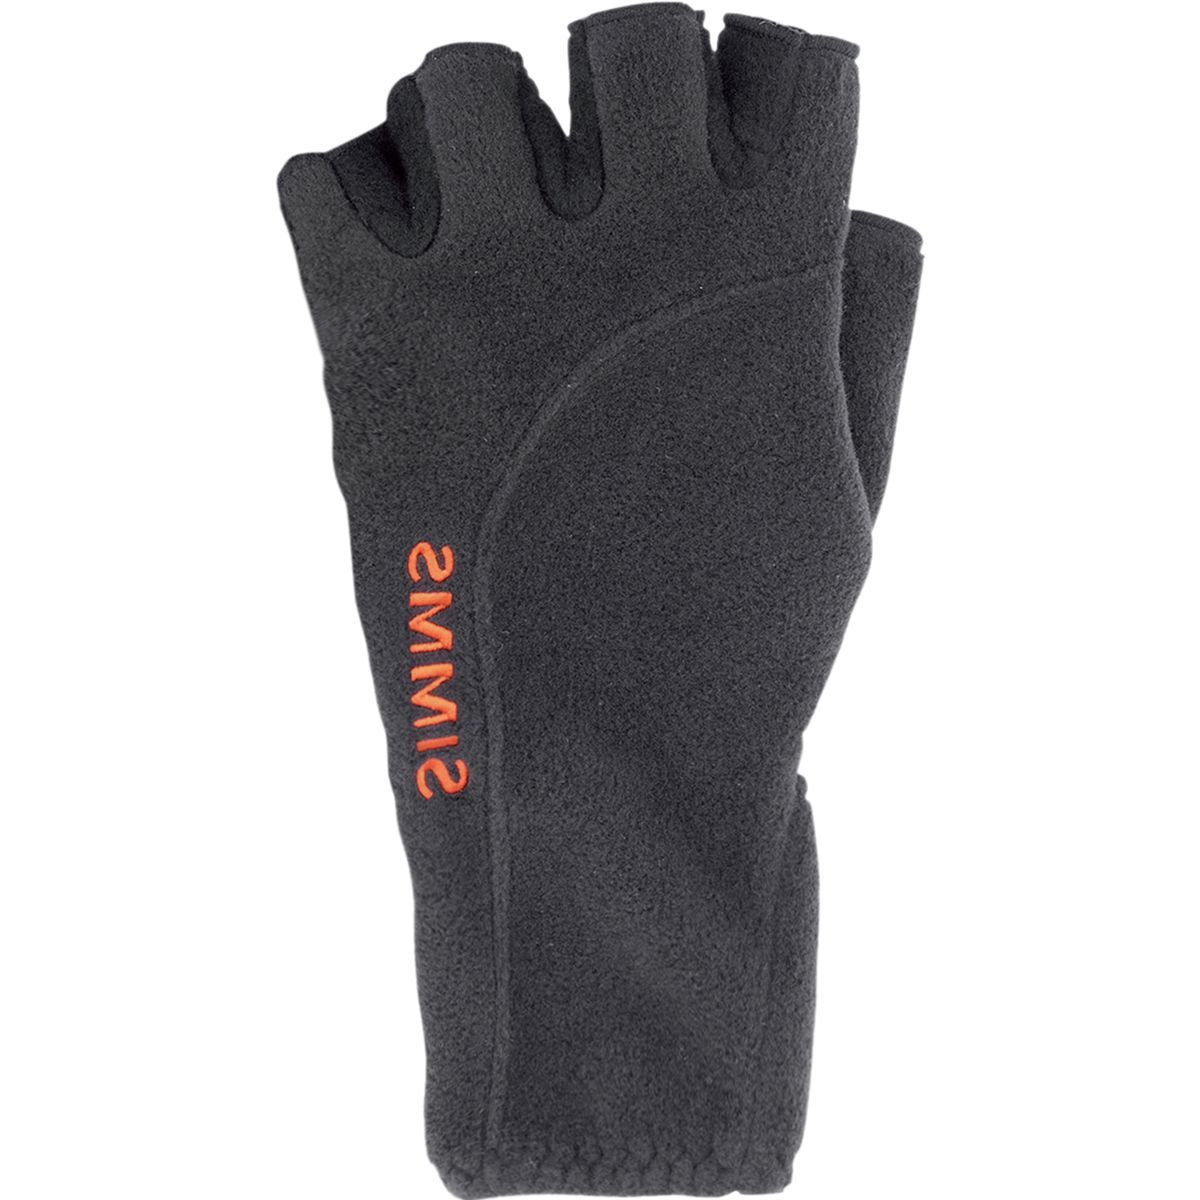 Simms Headwaters Half Finger Glove - Men's